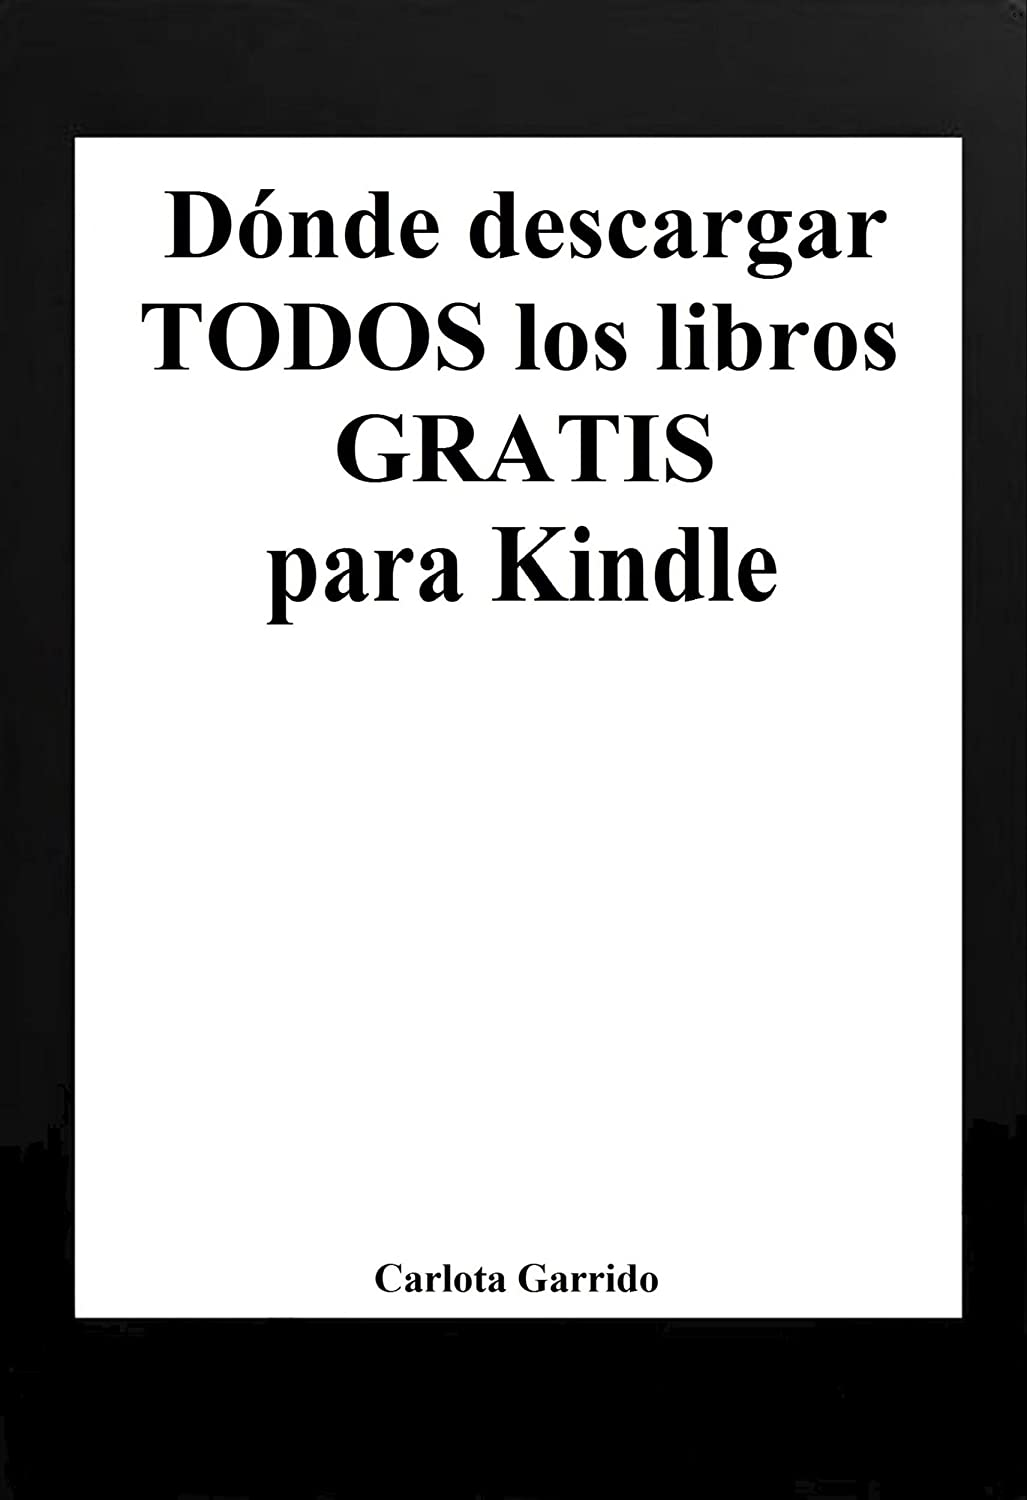 Libros ebook kindle